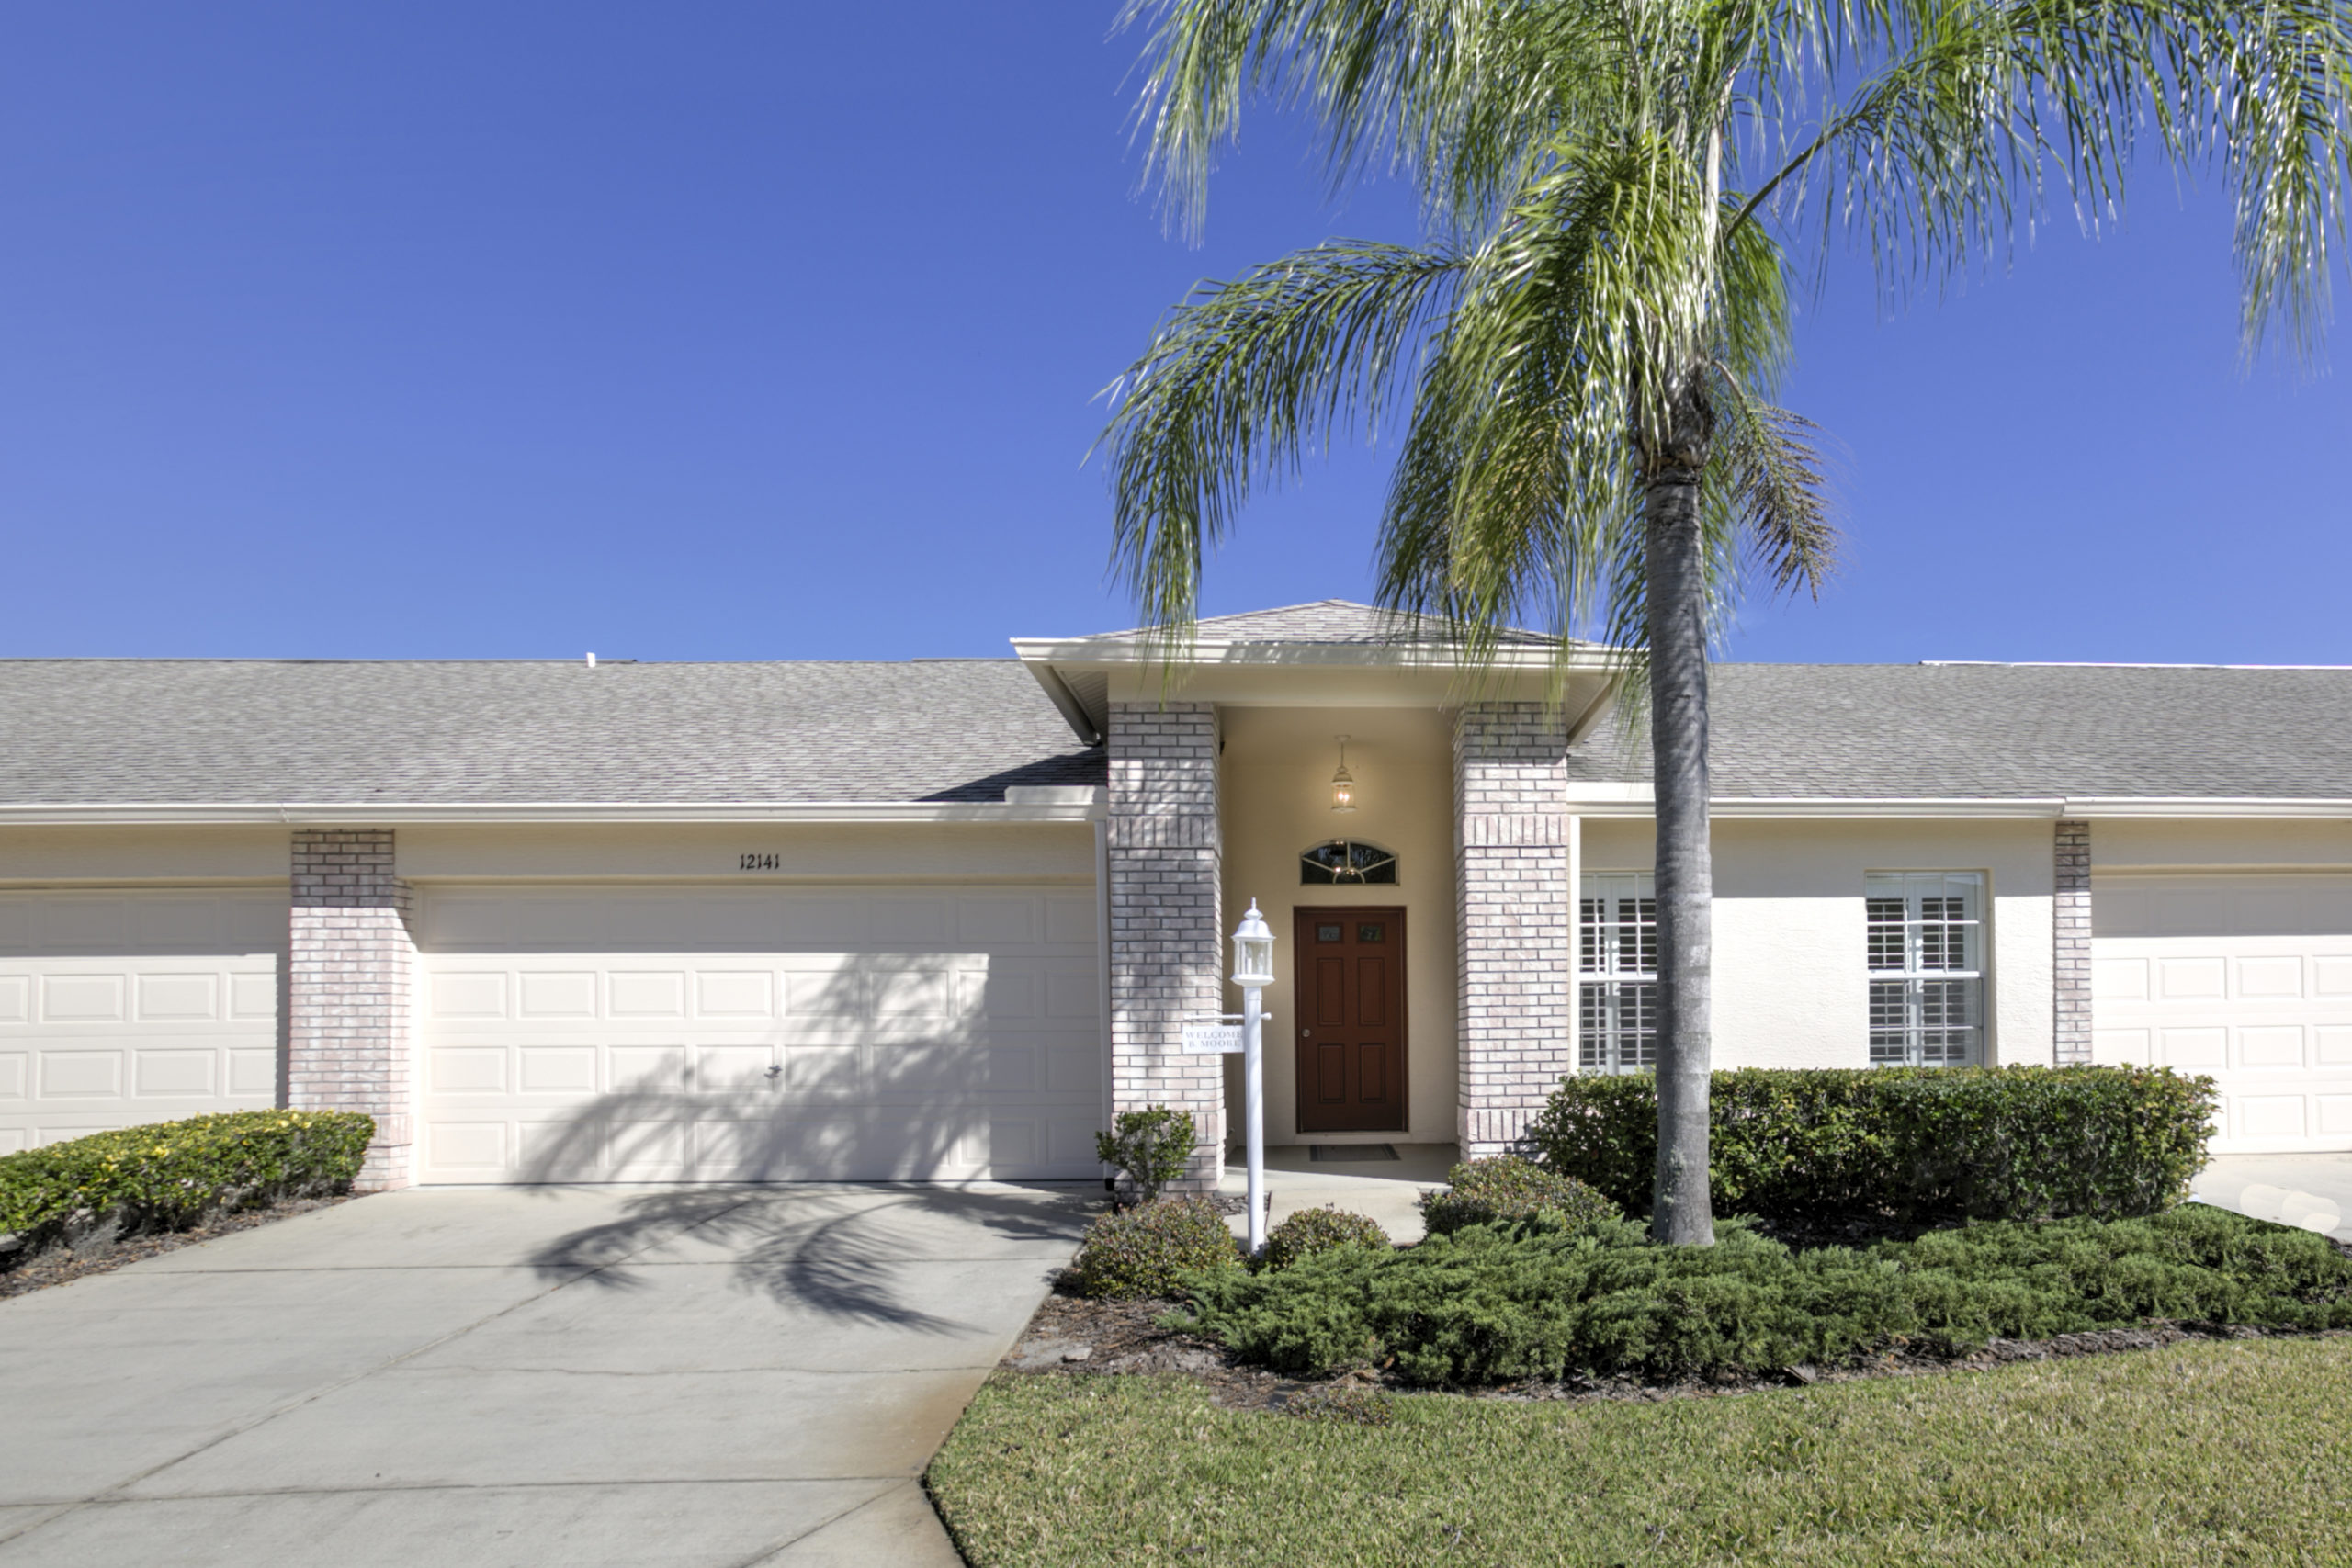 Most Popular Golf Community and Senior Complex in Trinity: Heritage Springs Villa now available $229,900